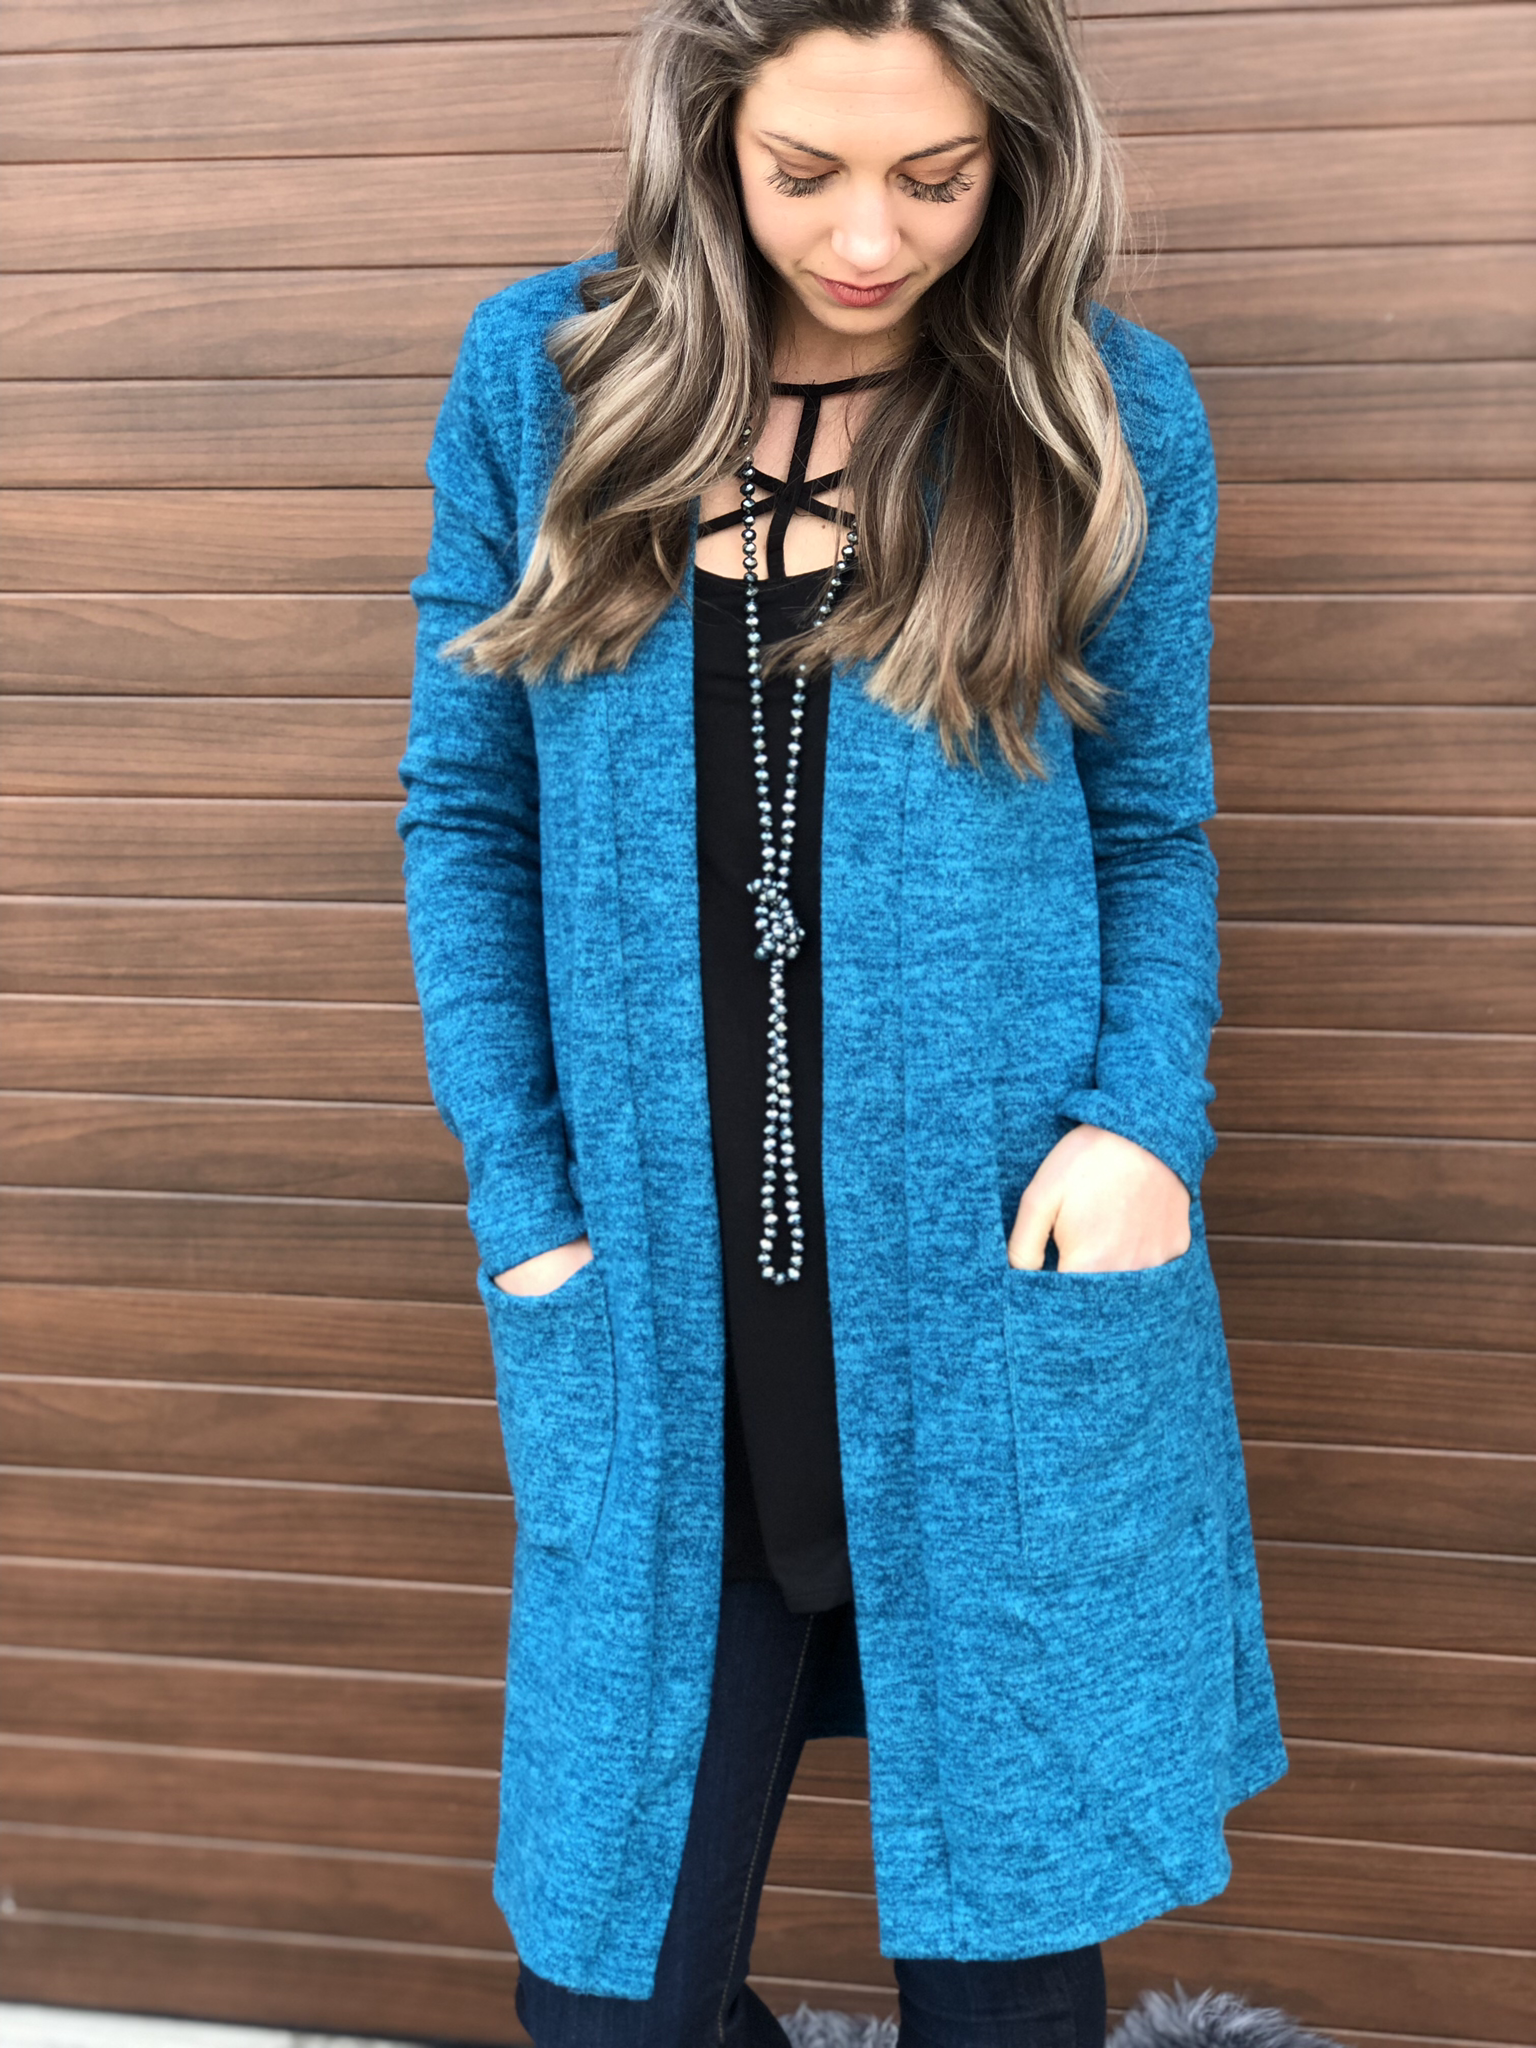 The Fireplace Cardigan - Teal 81512